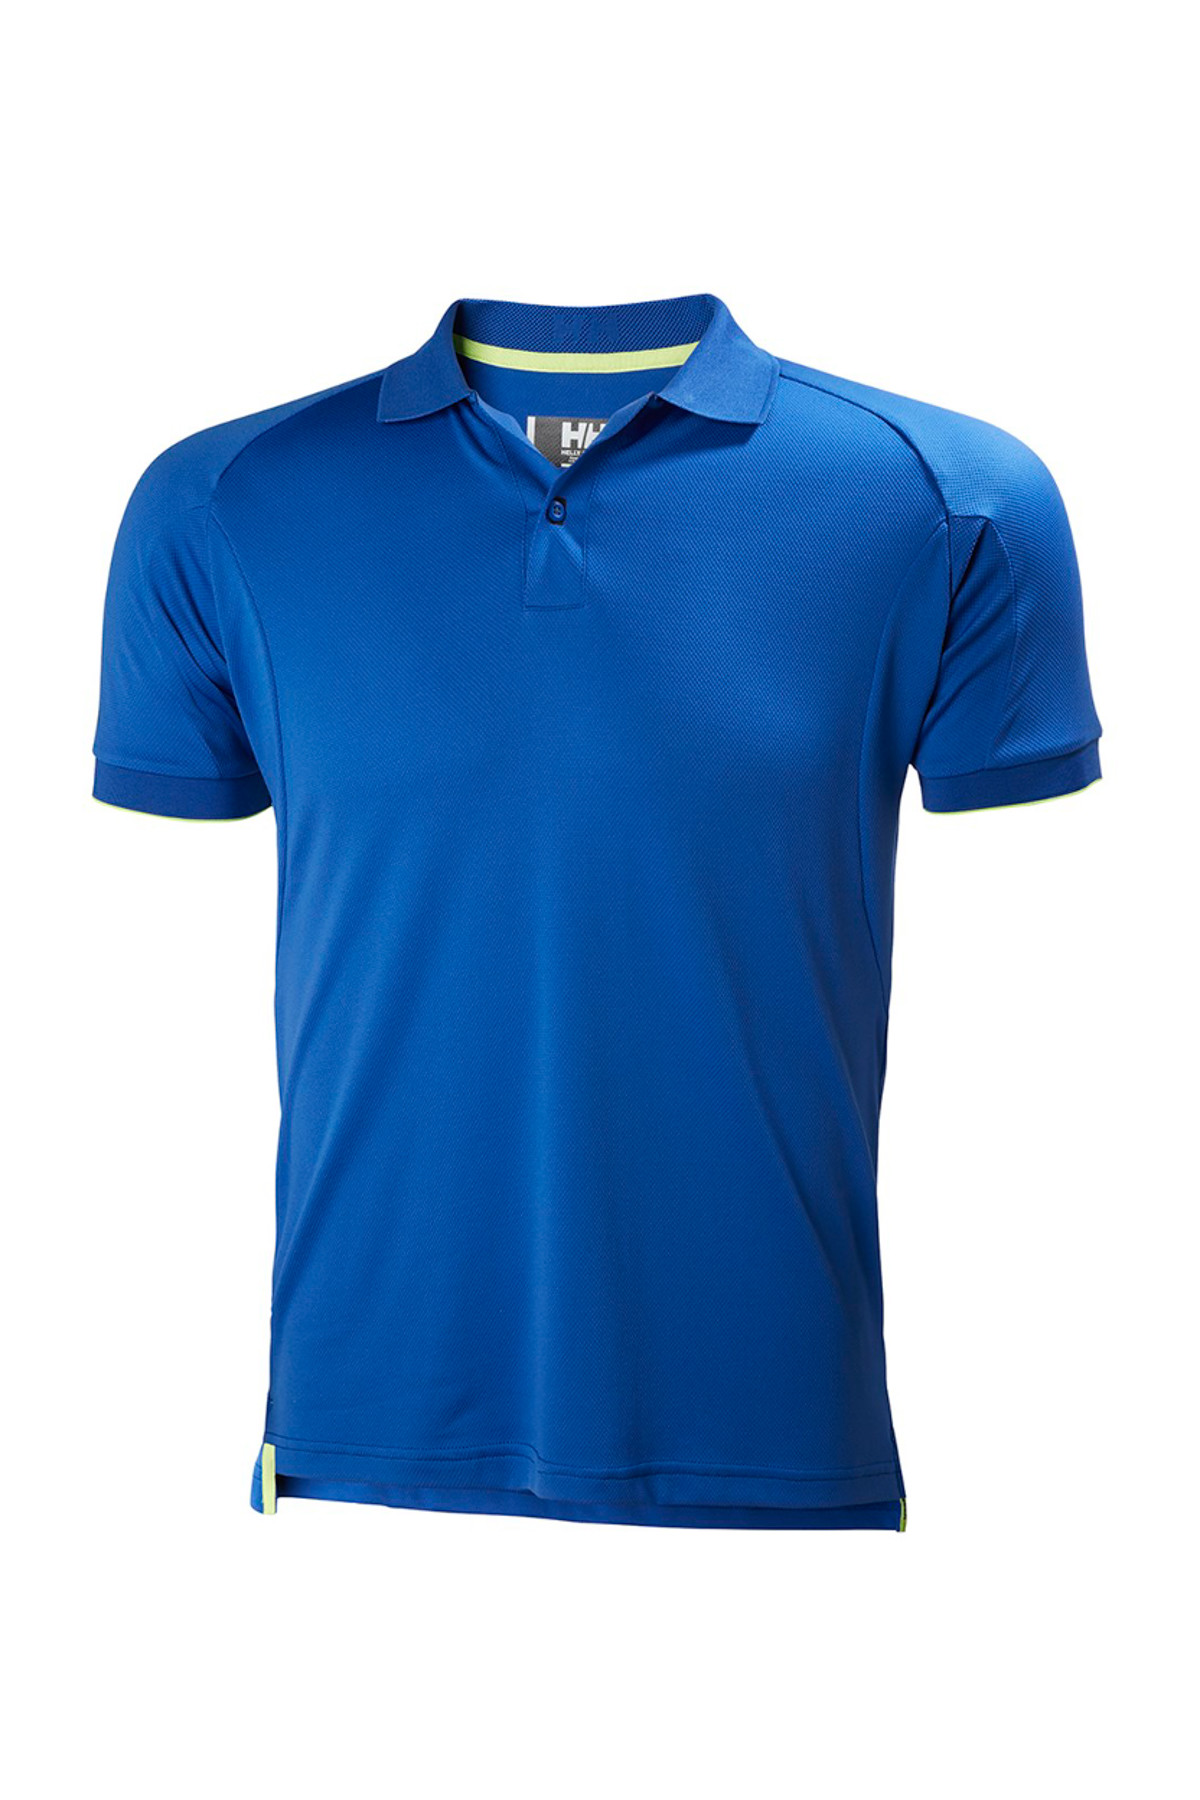 Helly Hansen Erkek Hp Ocean Polo Yaka T-shirt 1